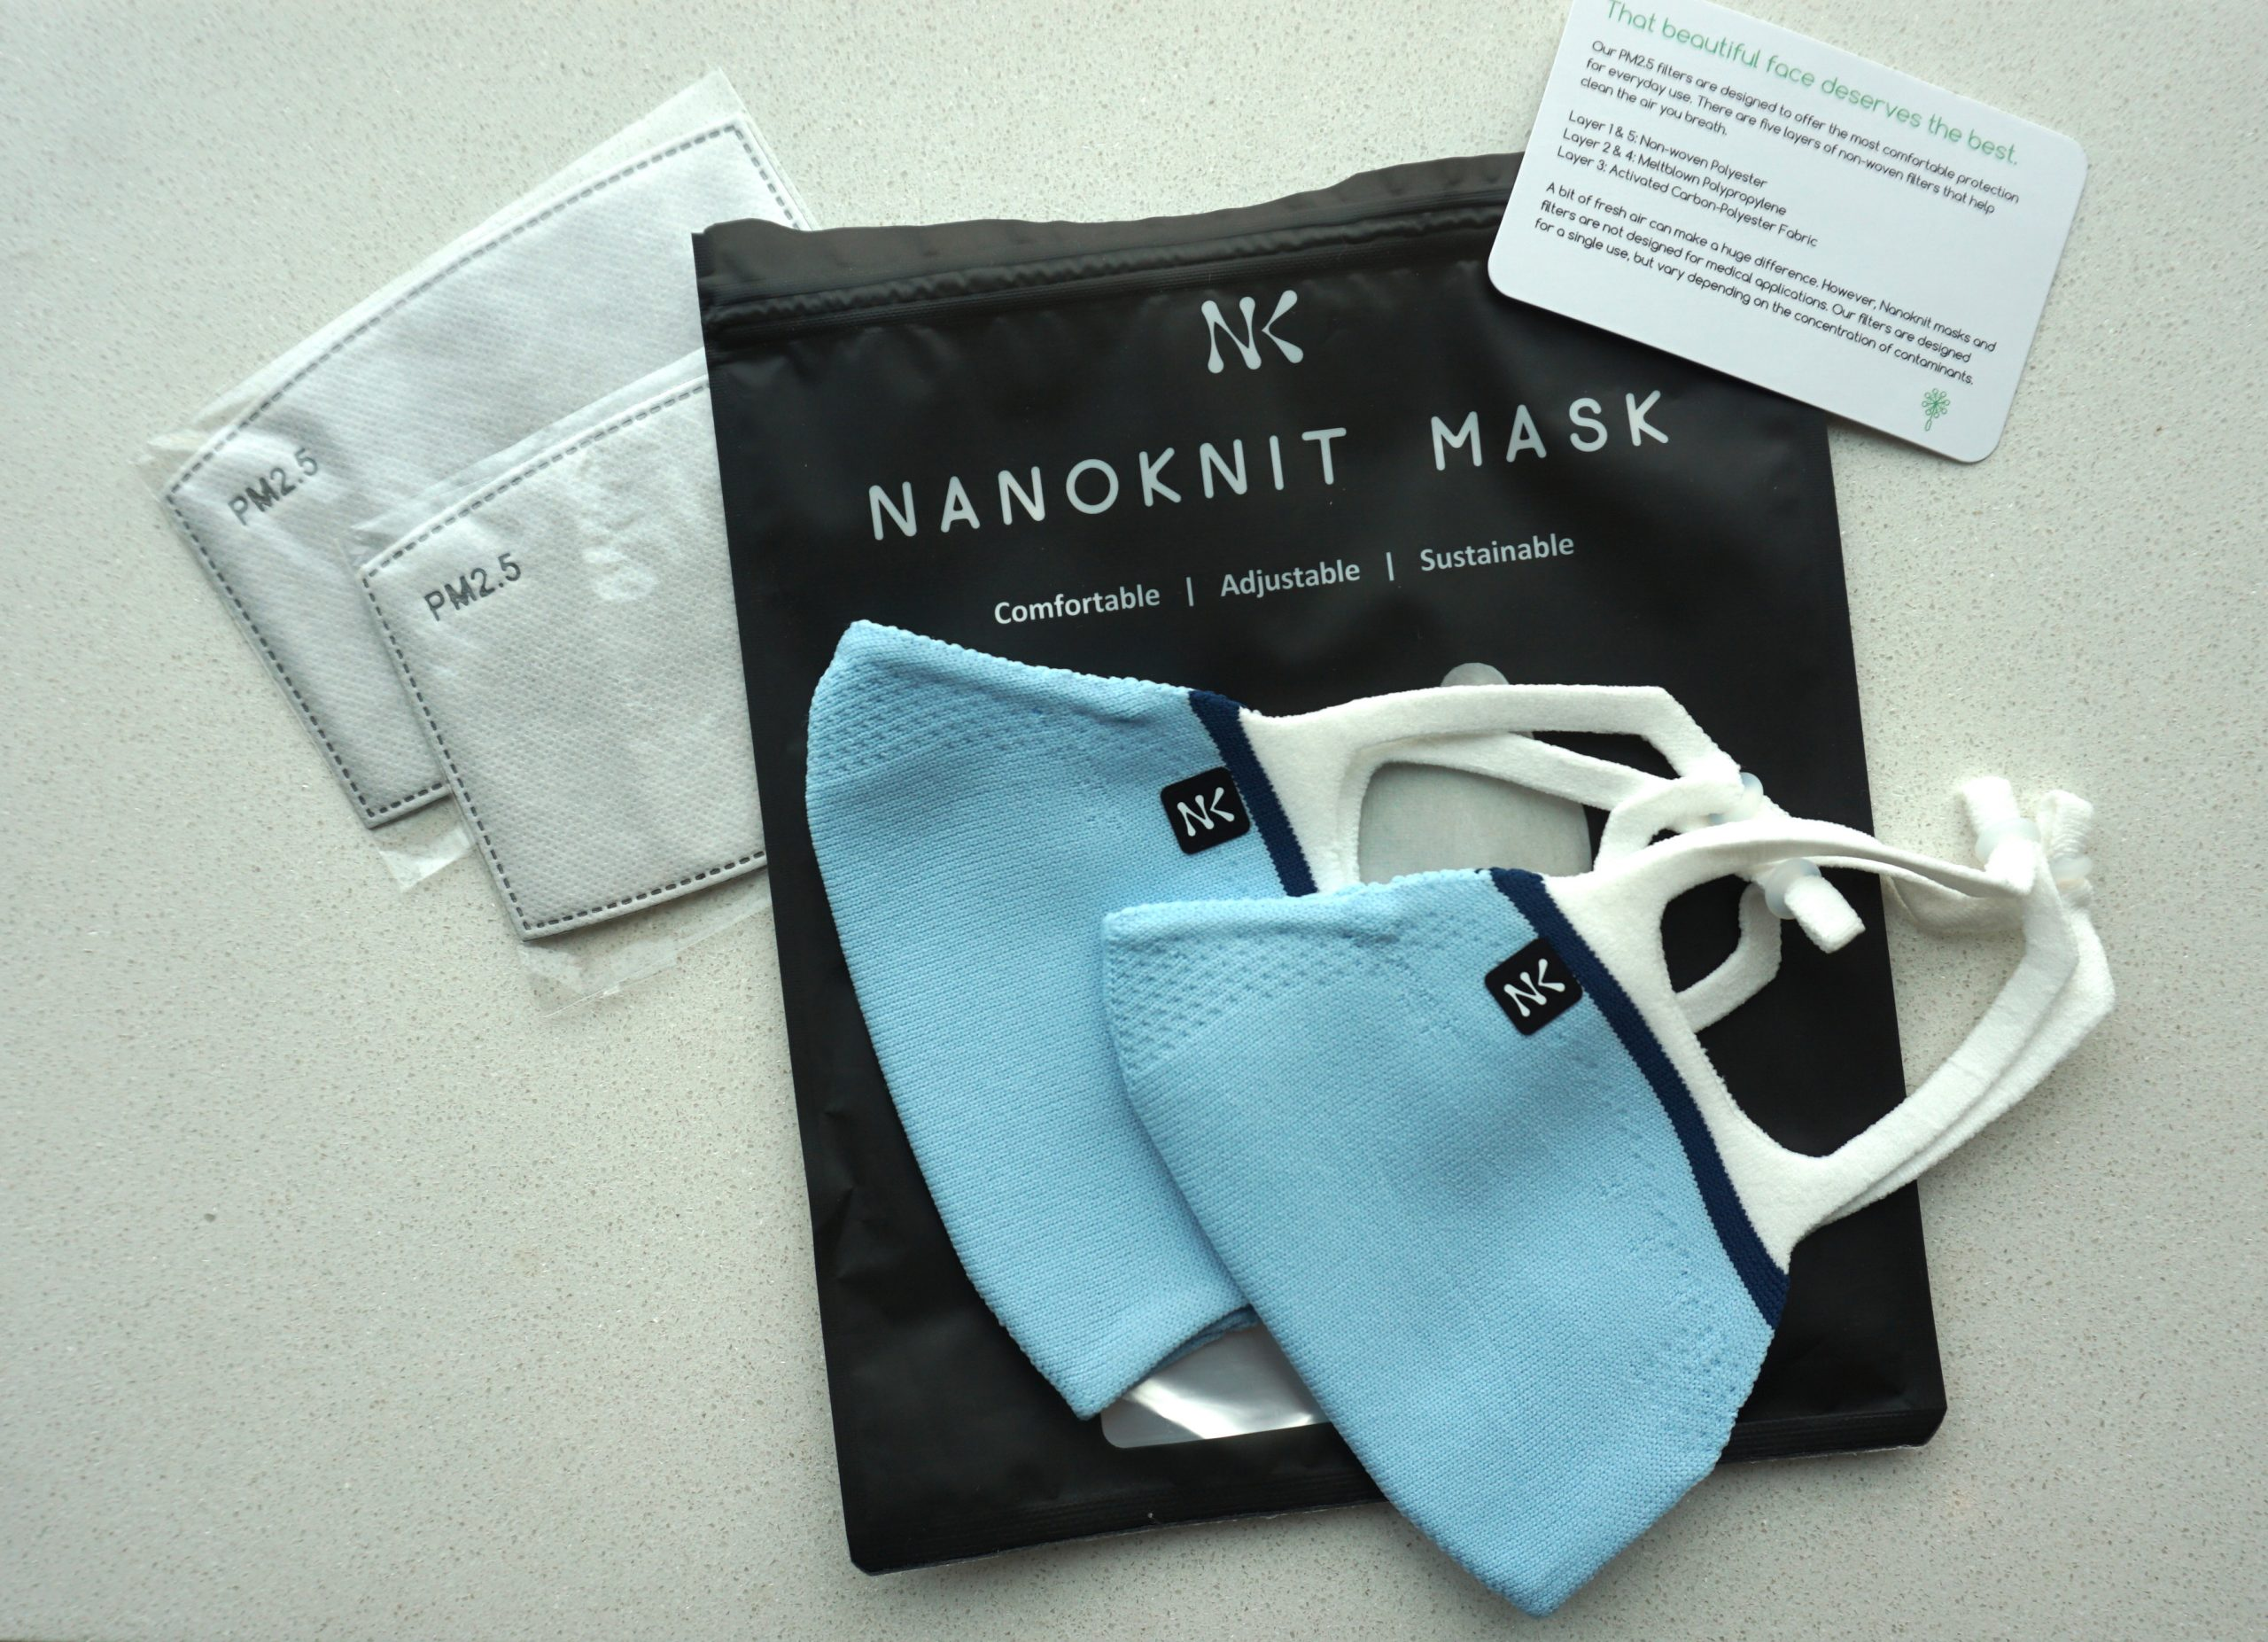 NanoKnit Reusable Masks